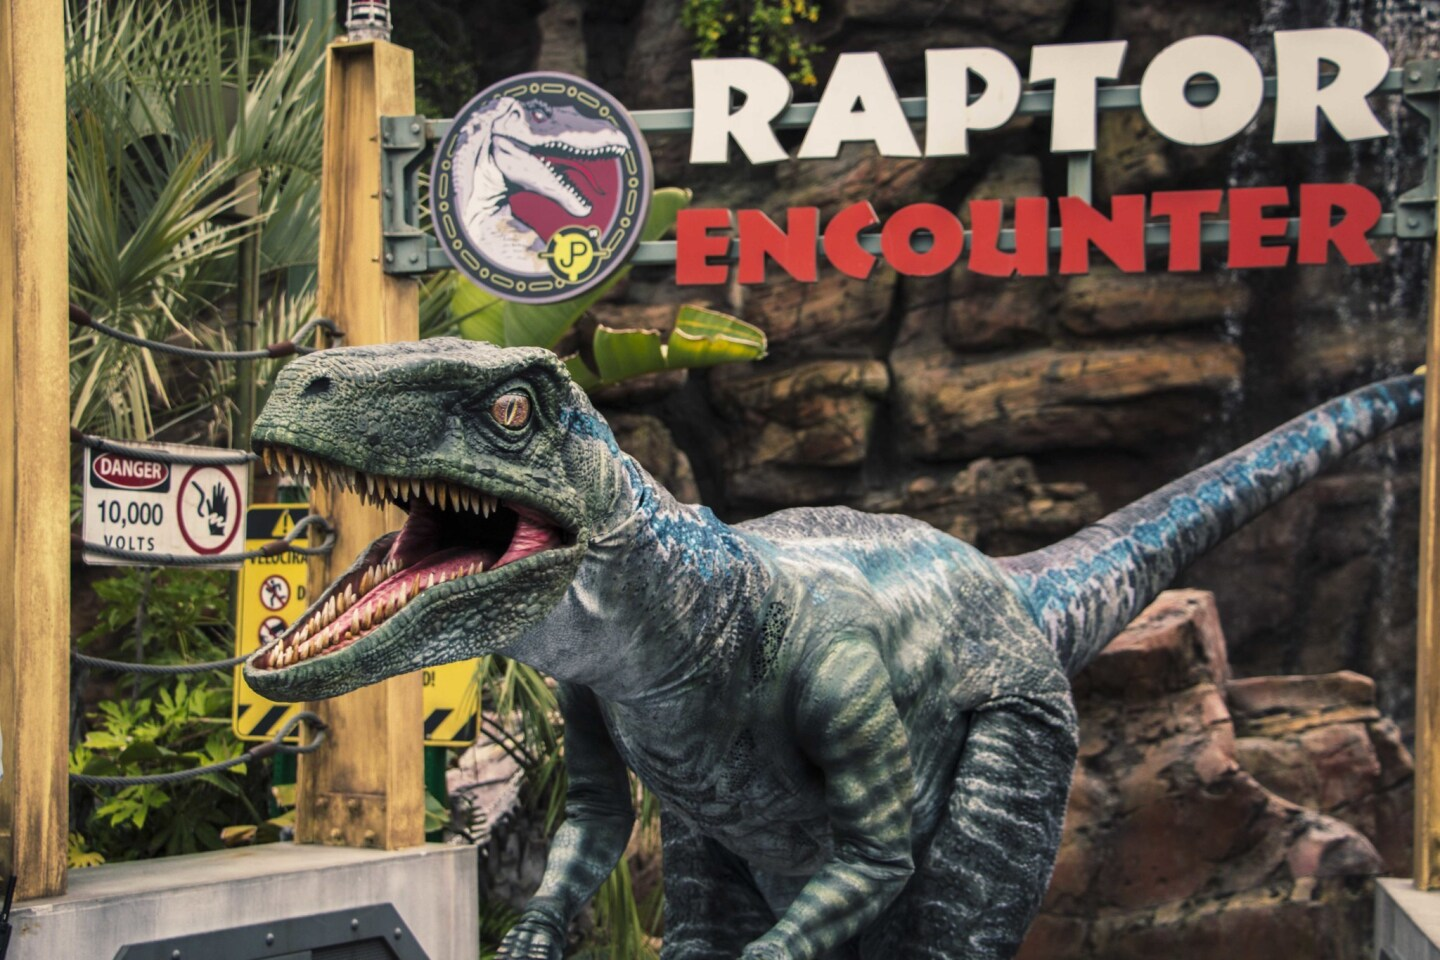 """Blue, the Velociraptor from Universal Pictures and Amblin Entertainment's Jurassic World Franchise, debuts at Universal Studios Hollywood and Universal Orlando Resort as part of the """"Raptor Encounter"""" experience."""